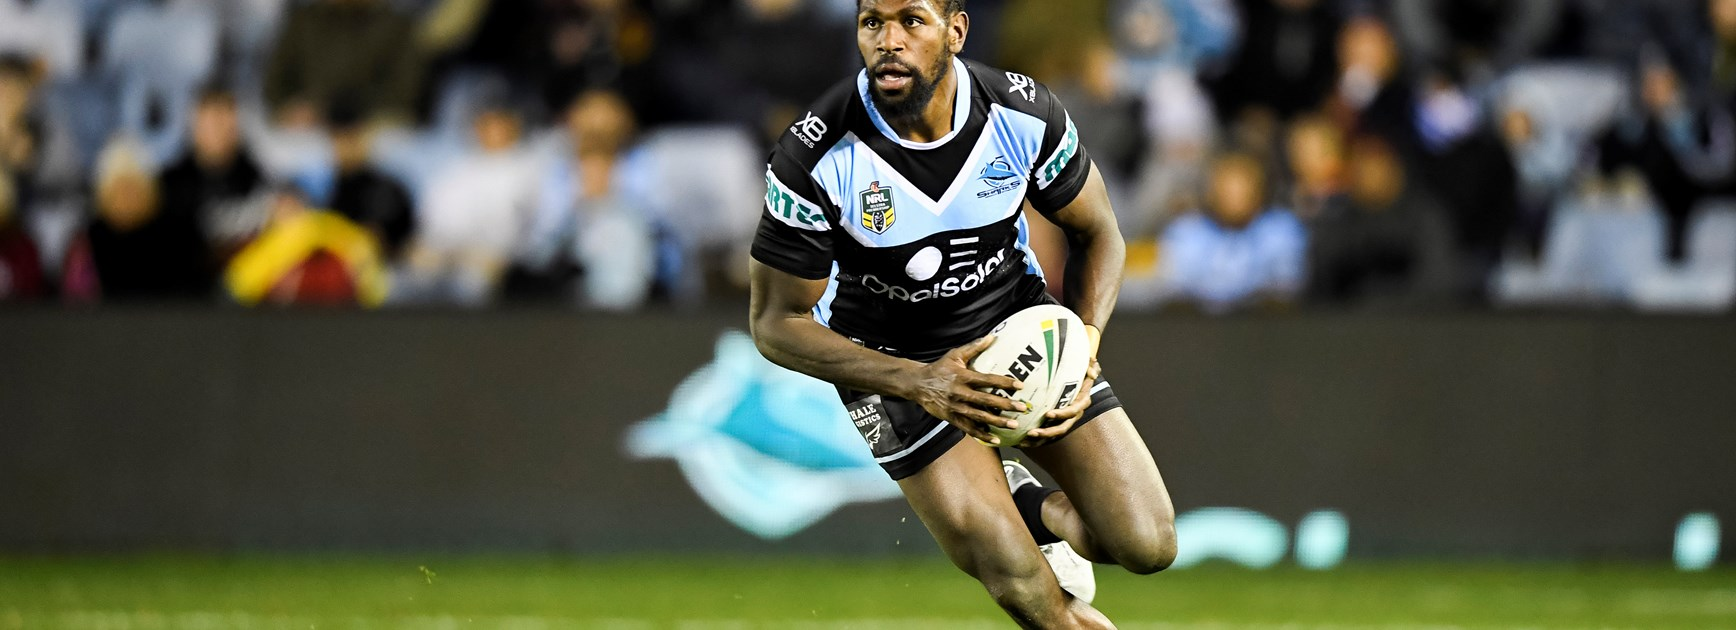 The Opposition: Cronulla Sharks